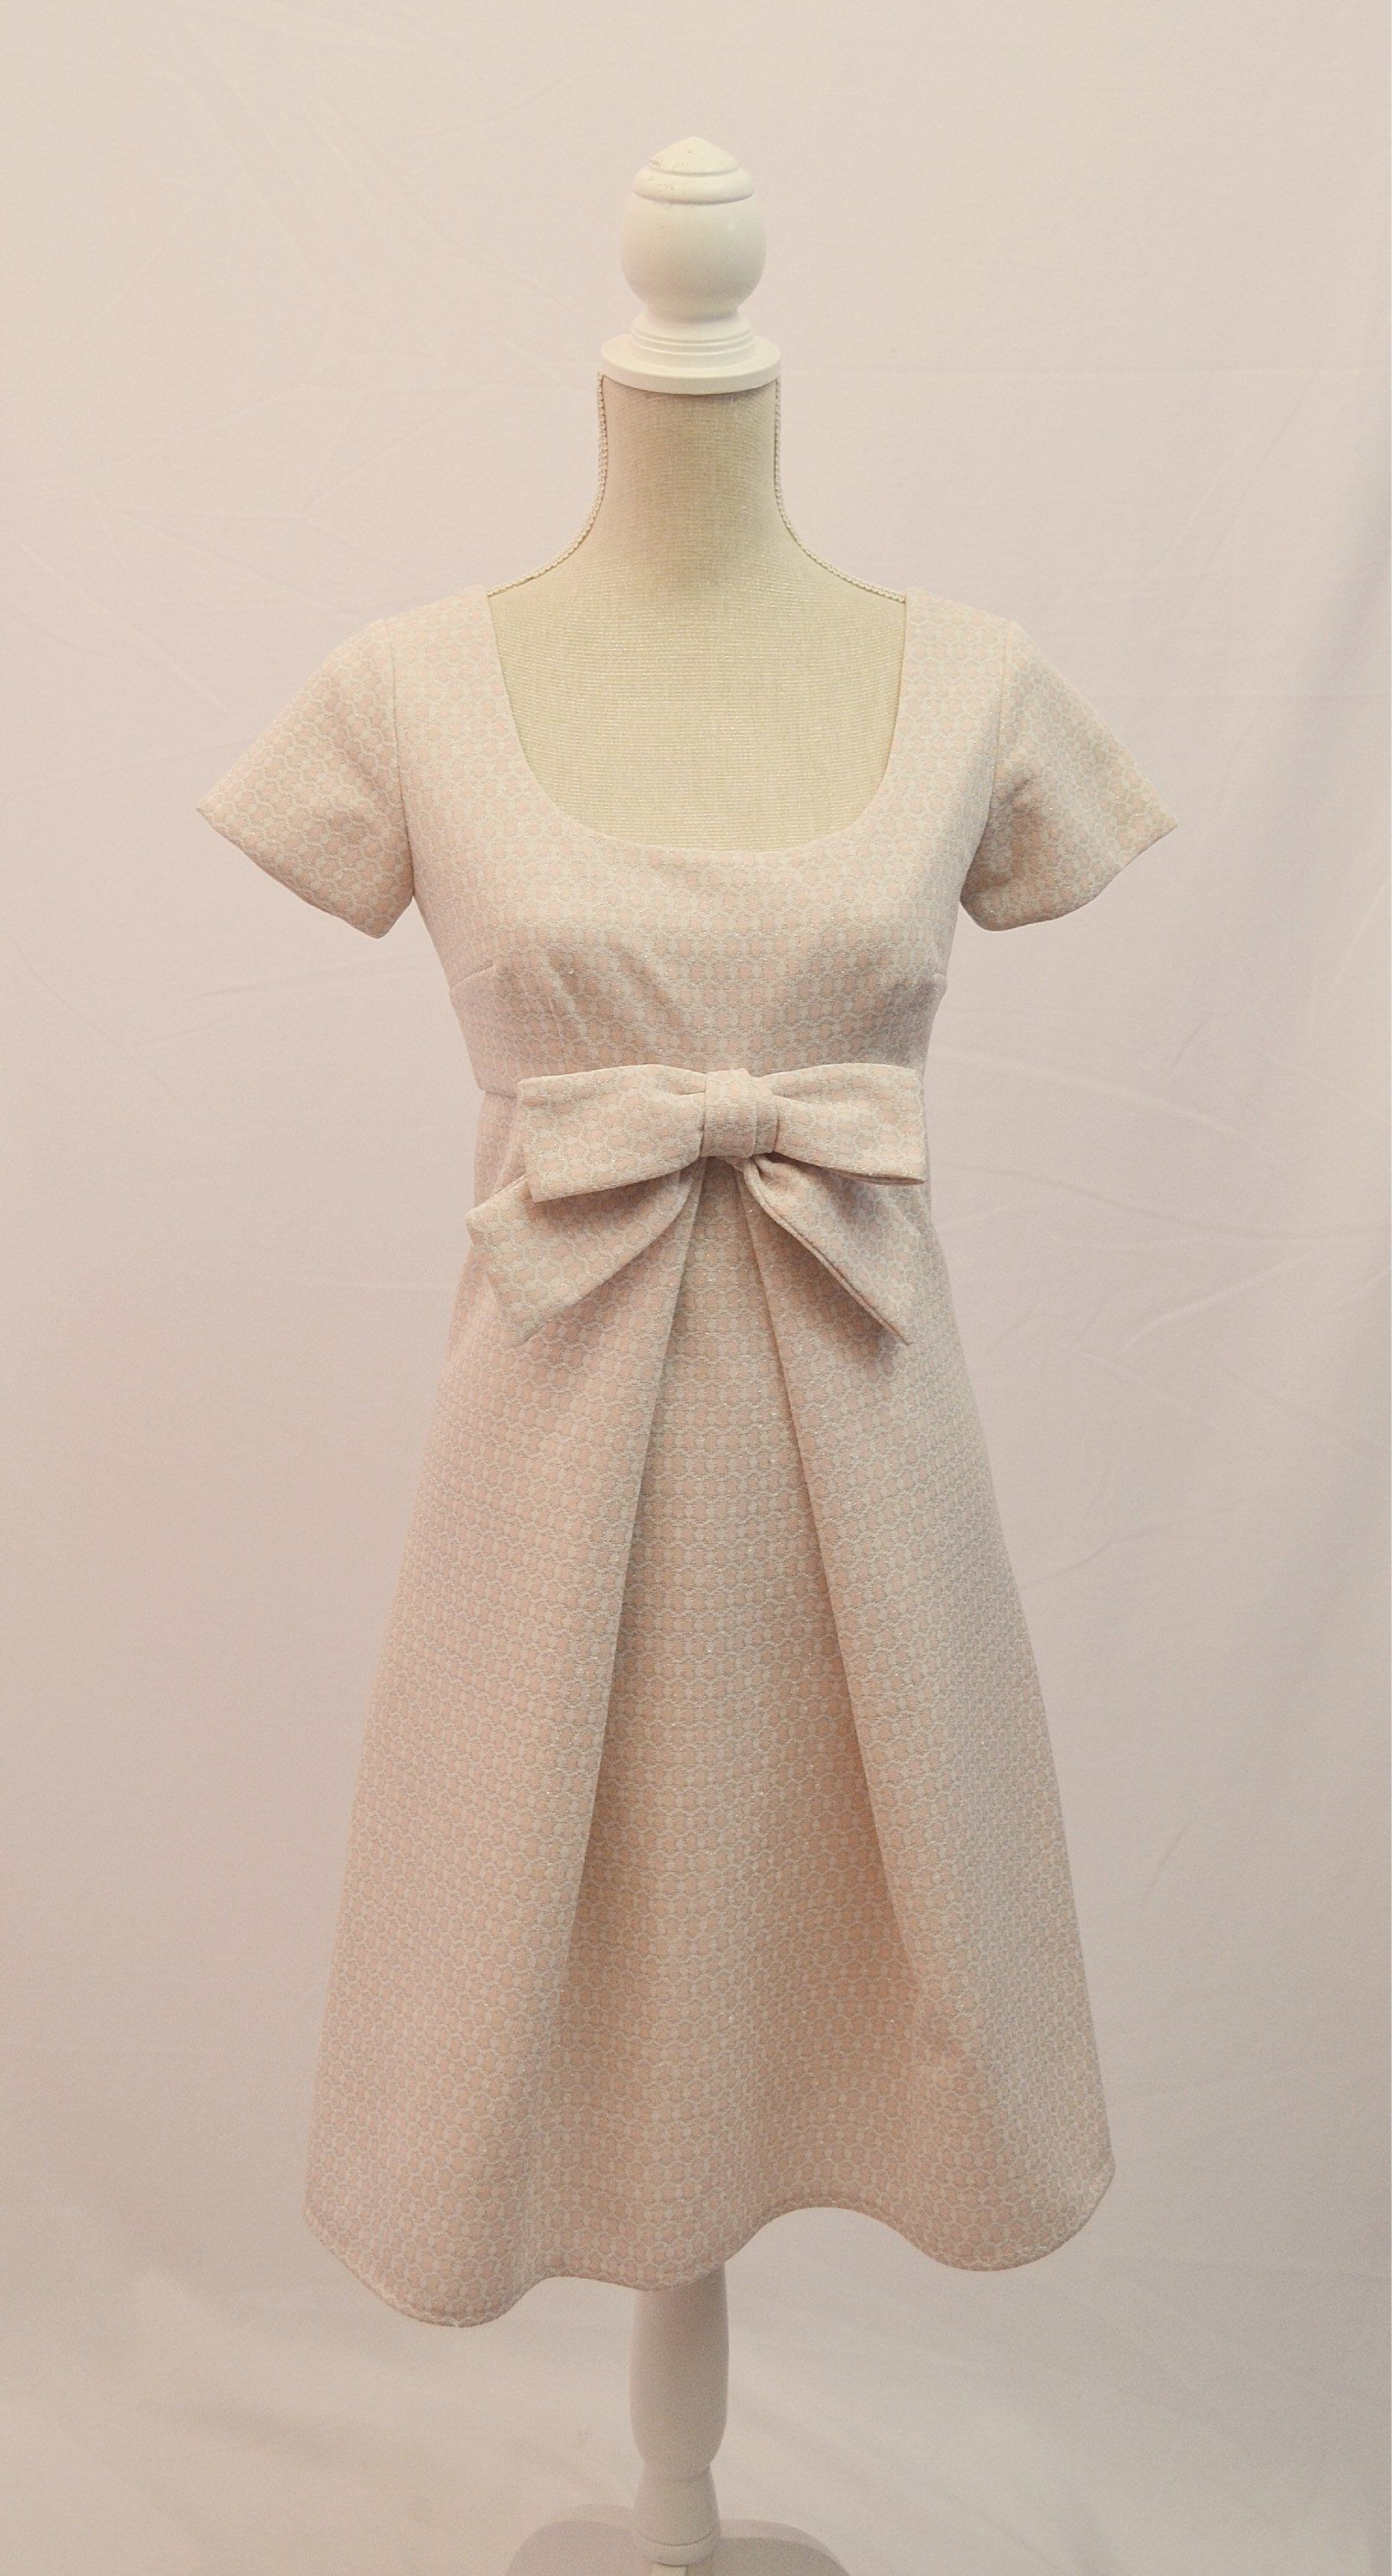 1960s Baby Pink And Silver Shift Dress With Large Bow On Bust Etsy Dresses 1960s Shift Dress Shift Dress [ 3000 x 1621 Pixel ]